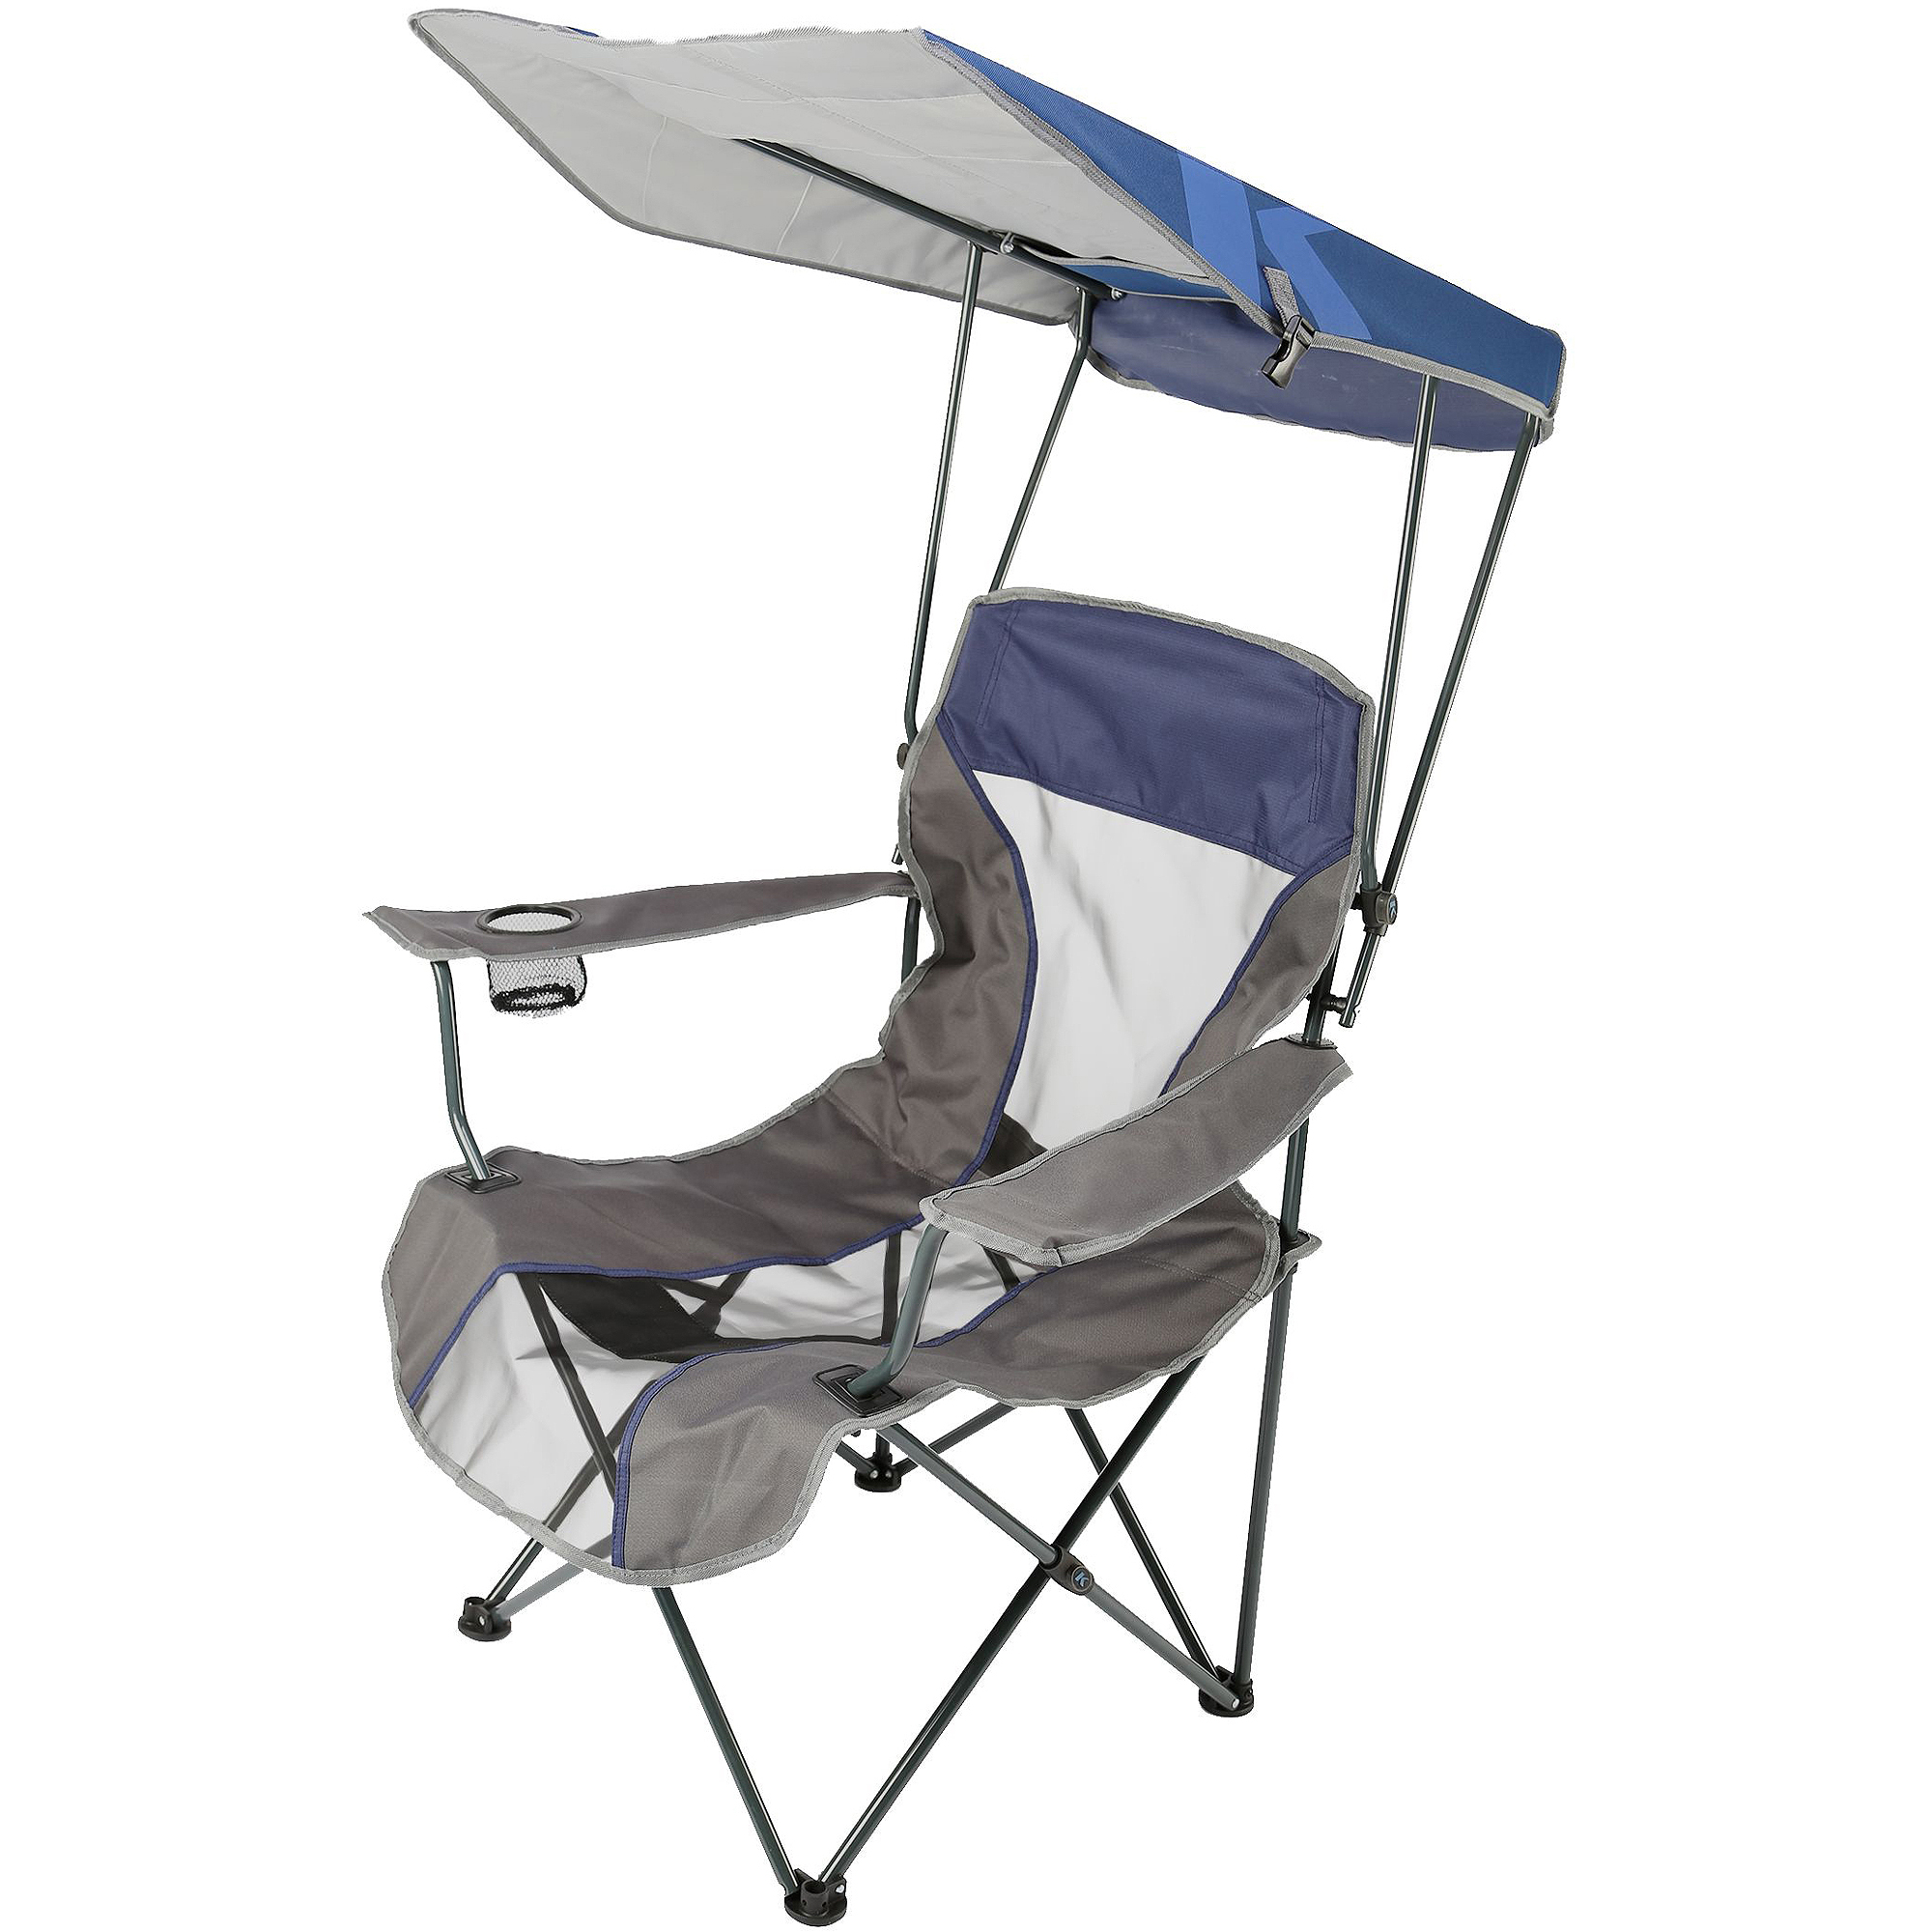 Folding Lawn Chair With Canopy Portable Cing Folding Lawn Chair W Canopy Navy Outdoor Chair With  sc 1 st  Screensinthewild.org & folding lawn chair with canopy - 28 images - shade folding c chair ...